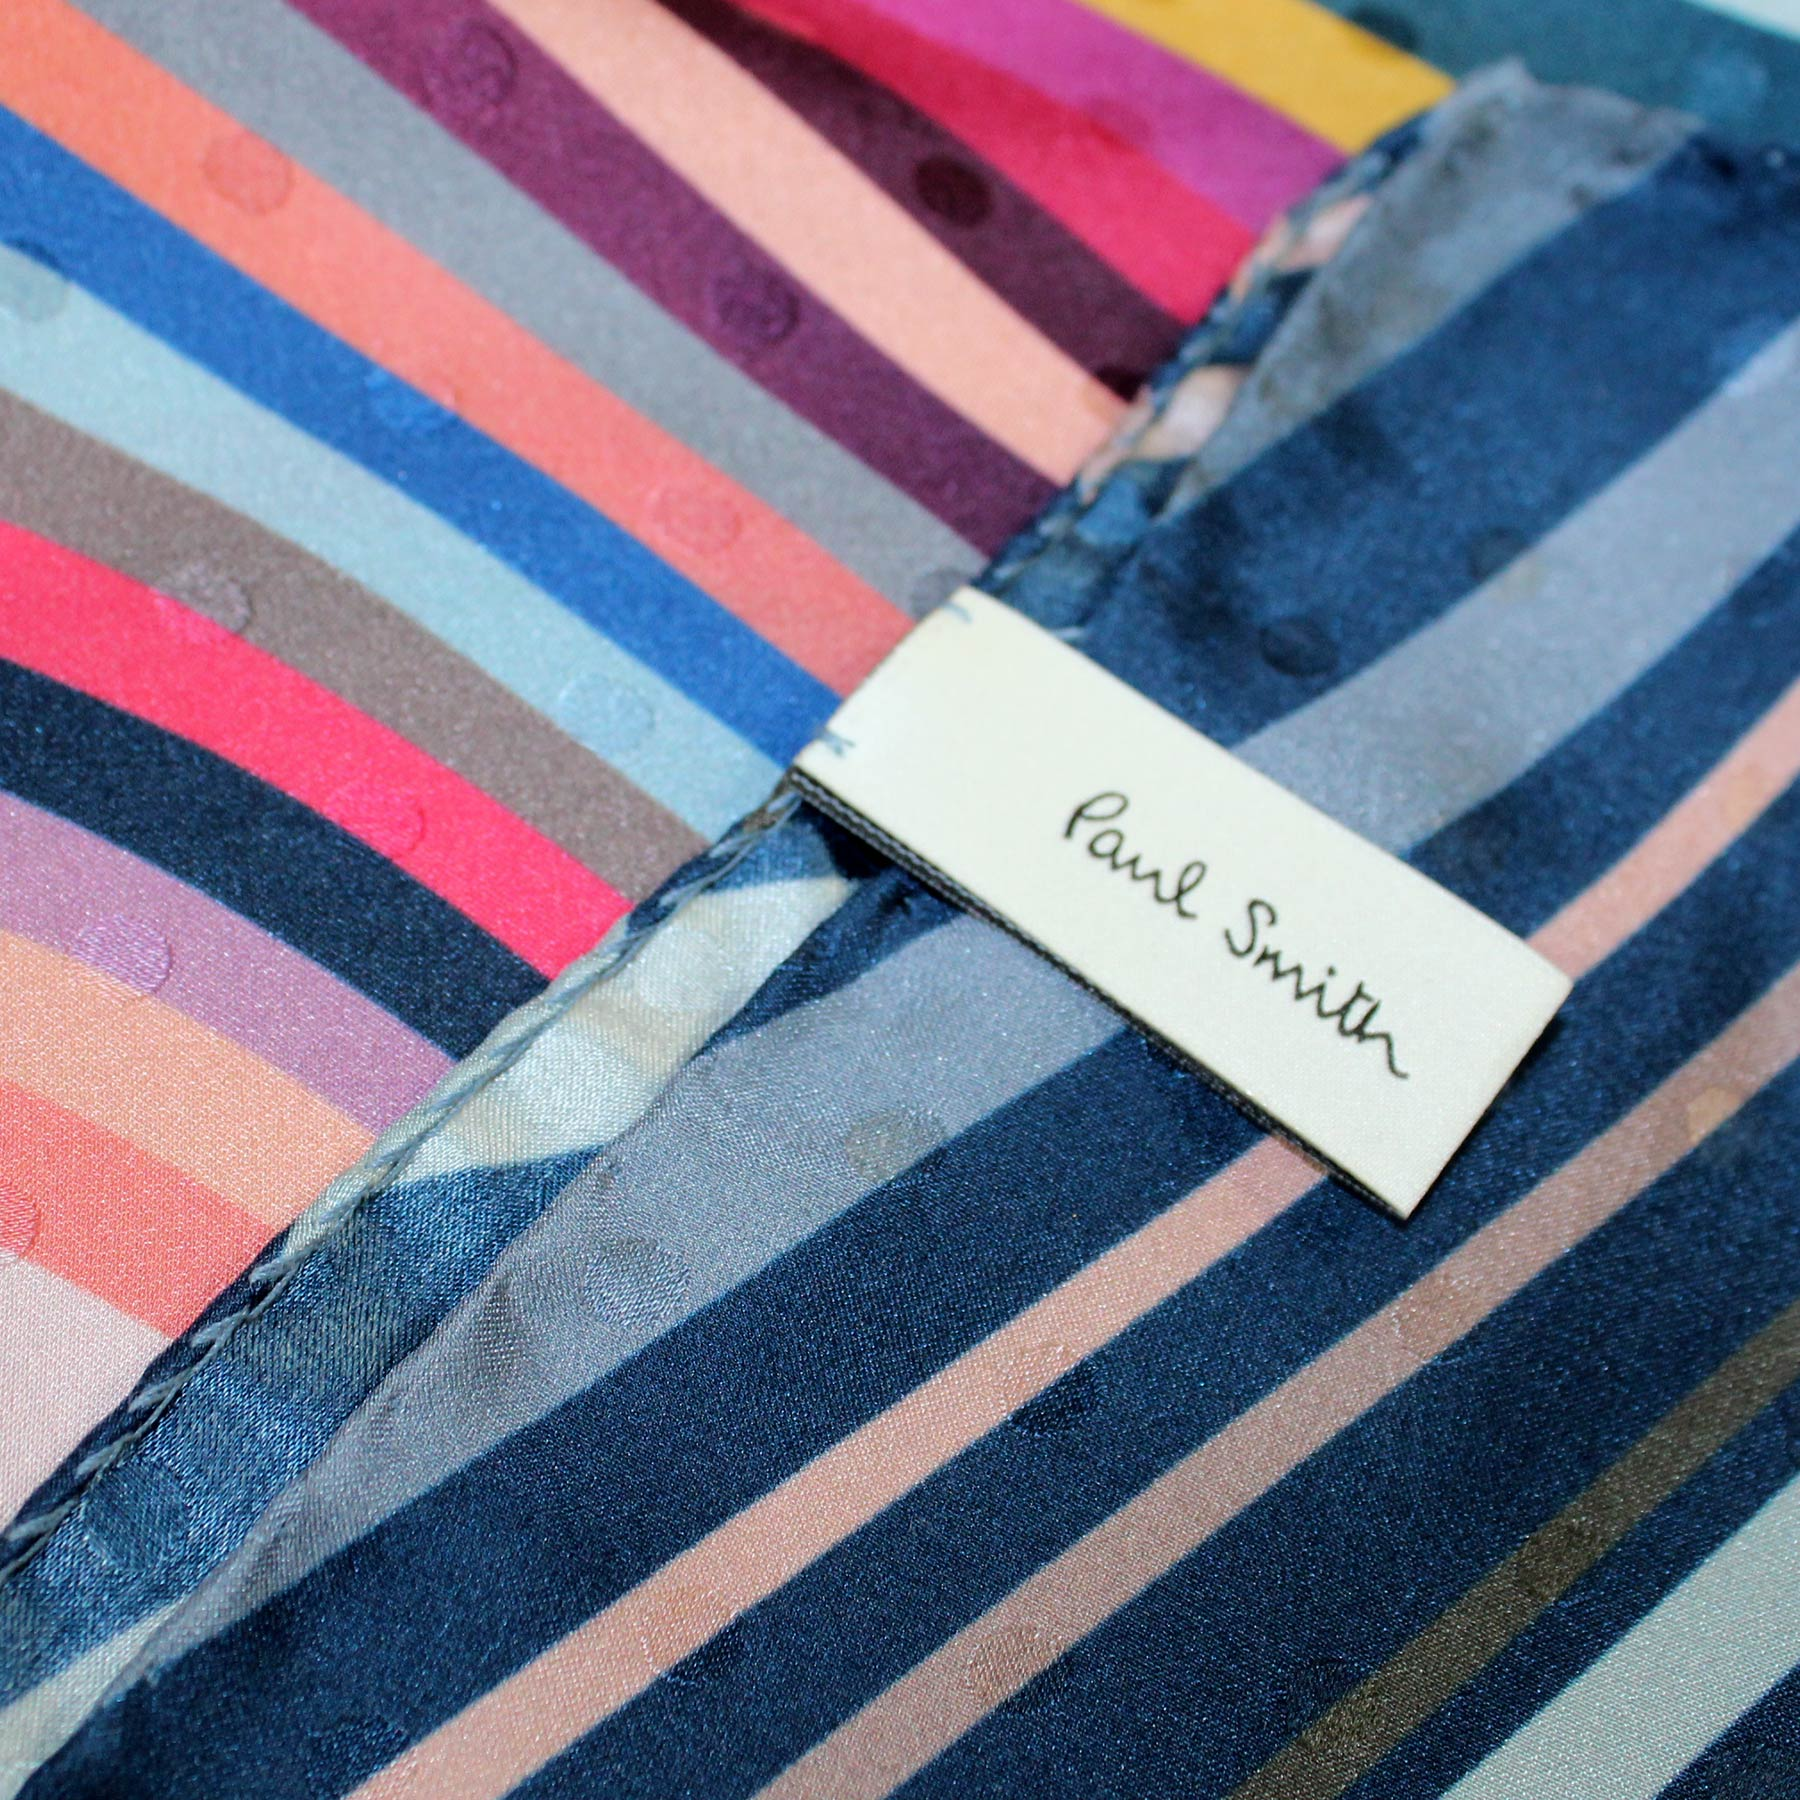 Paul Smith Scarf Colorful Swirly Stripes - Women Collection Silk Shawl